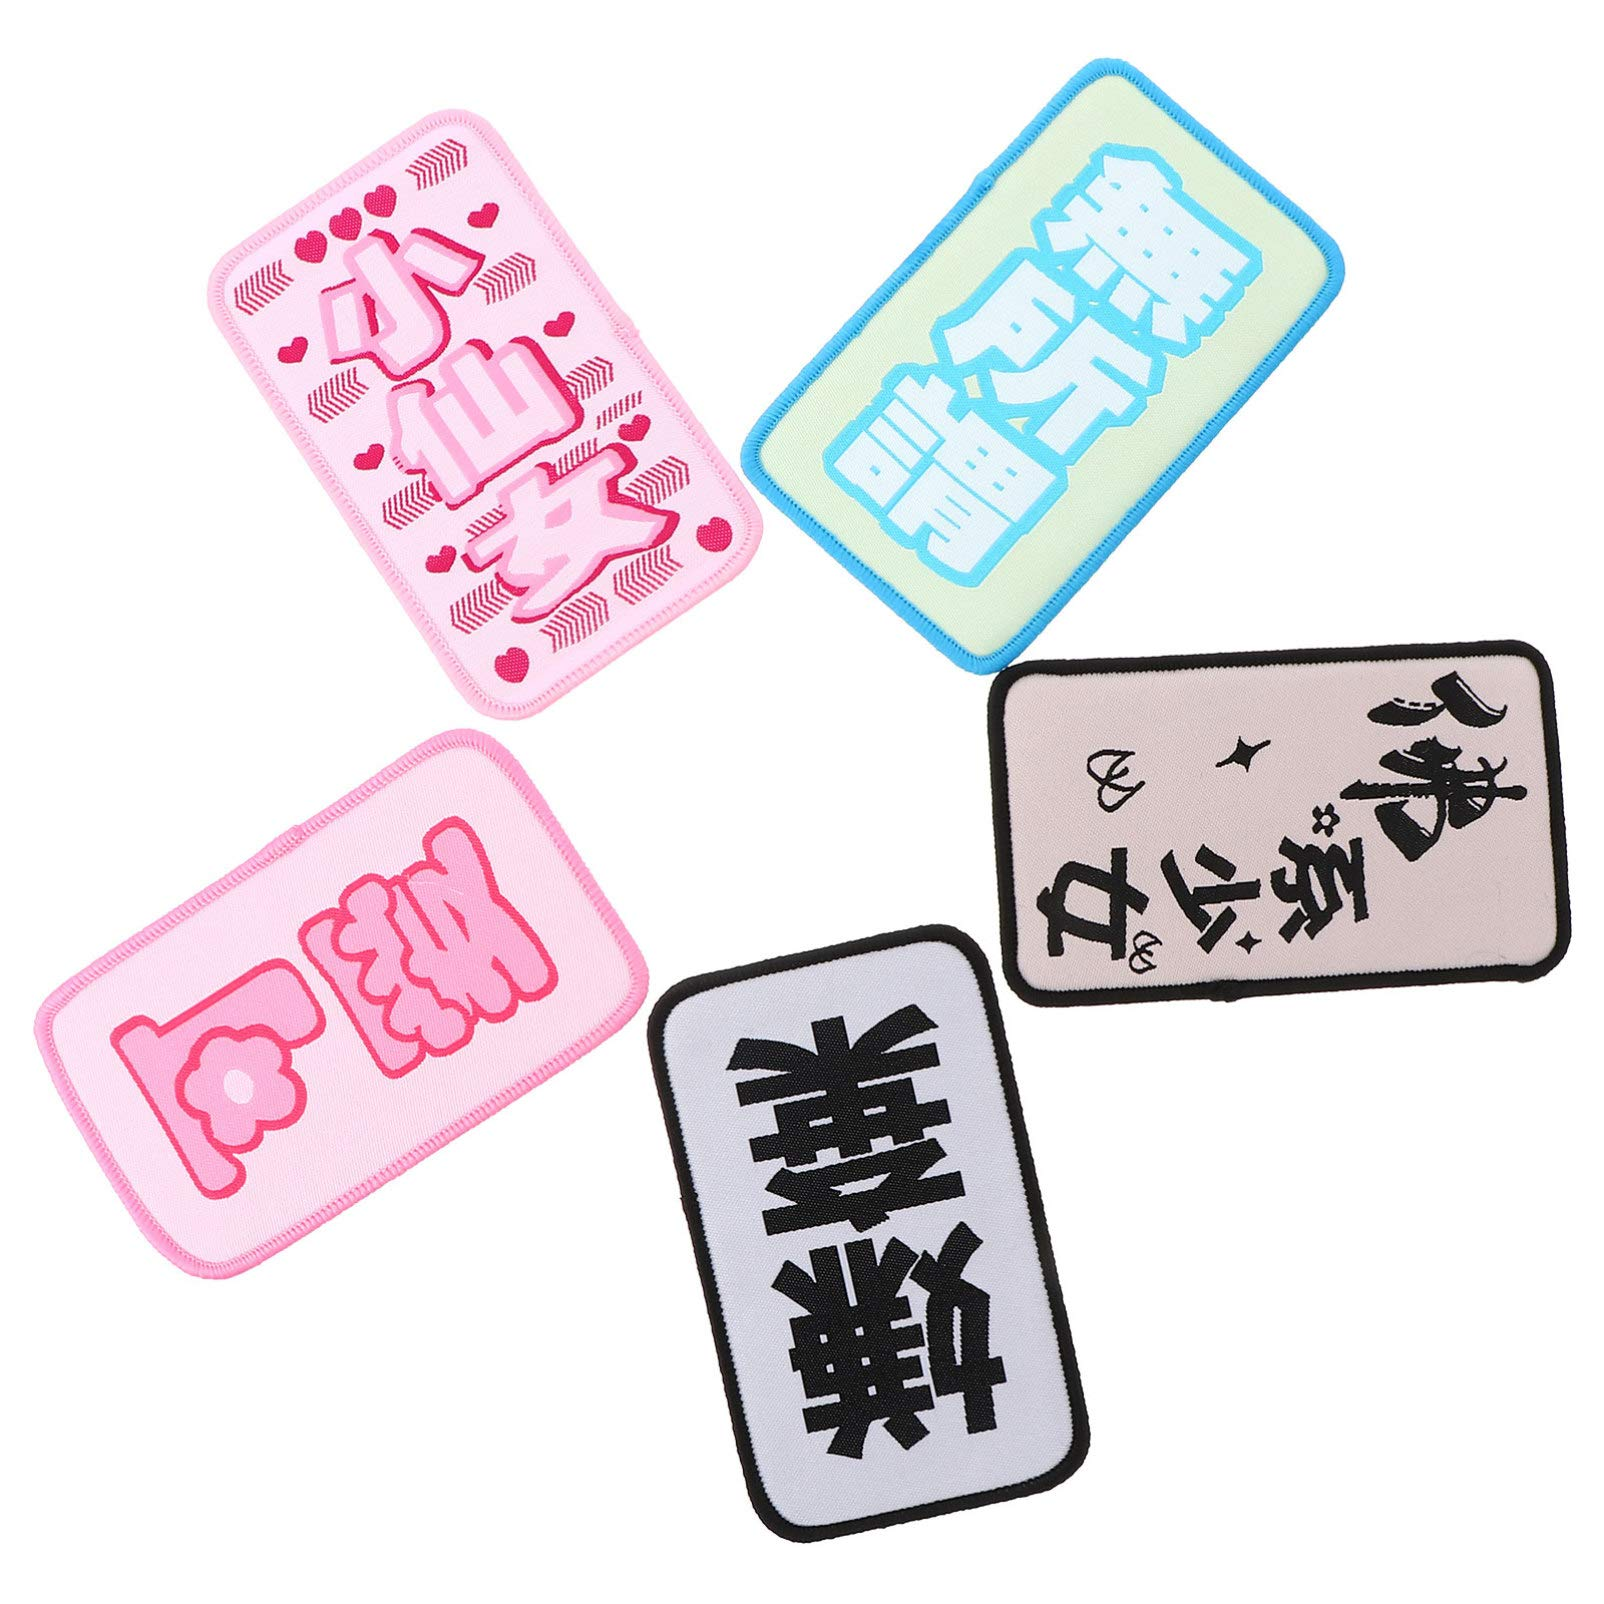 PIXNOR 5pcs Bangs Hair Pad Magic Hair Paste Pad Chinese Character Style Hair Fringe Grippers Hair Sticker Clip for Women Girls